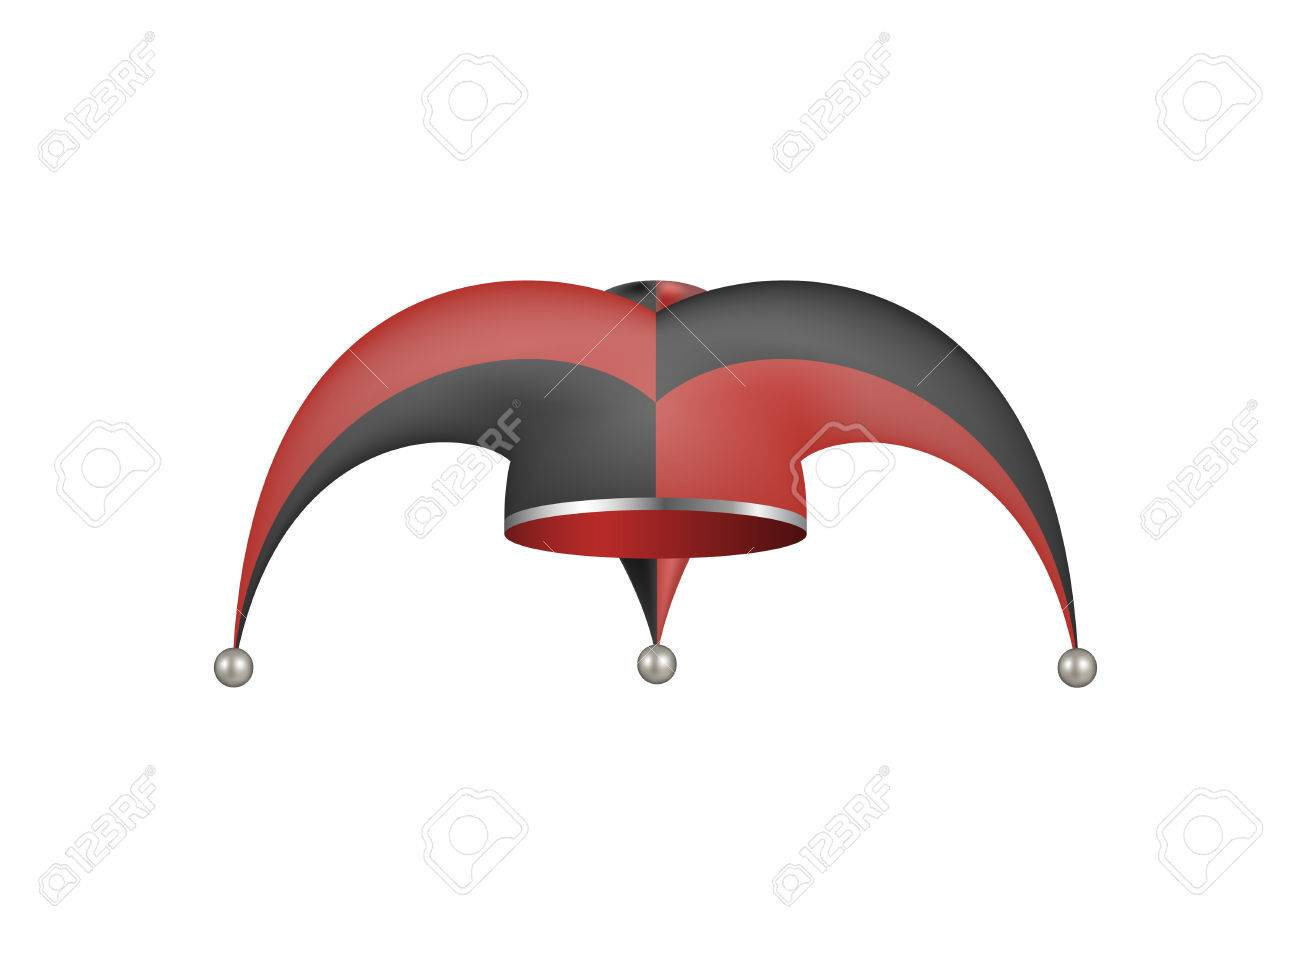 b795d186196 Jester hat in black and red design Stock Vector - 40382425